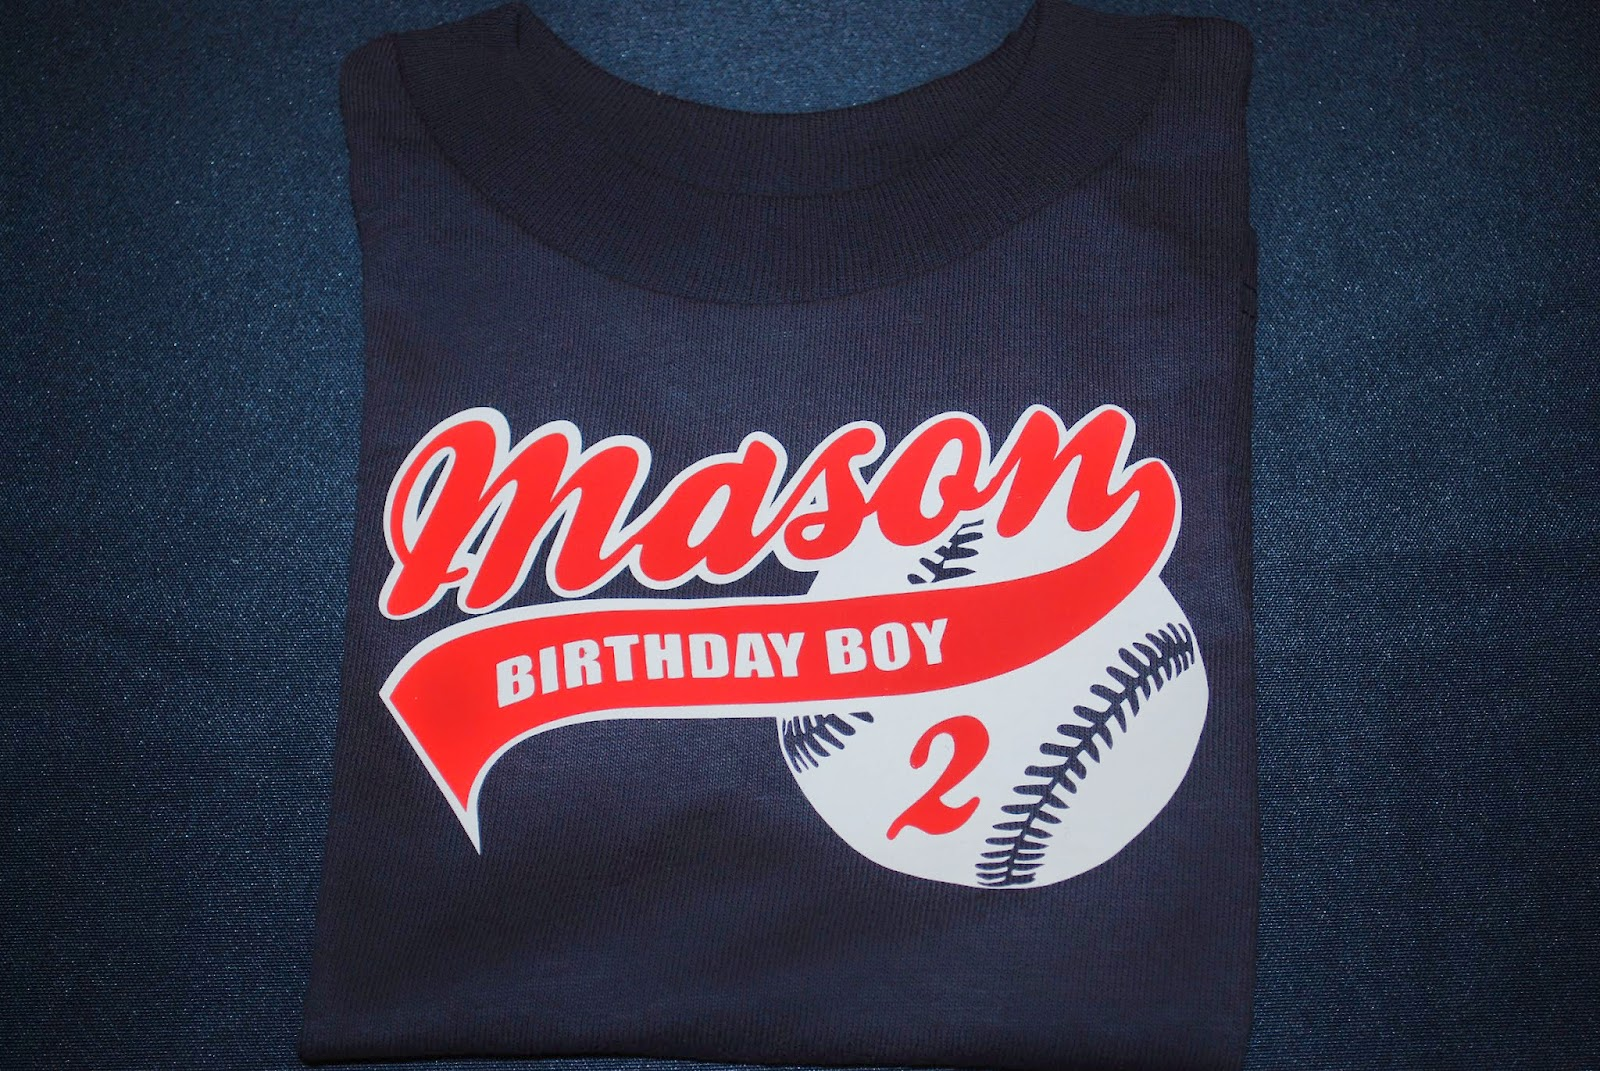 Masons Birthday Shirt Also Came From Etsy